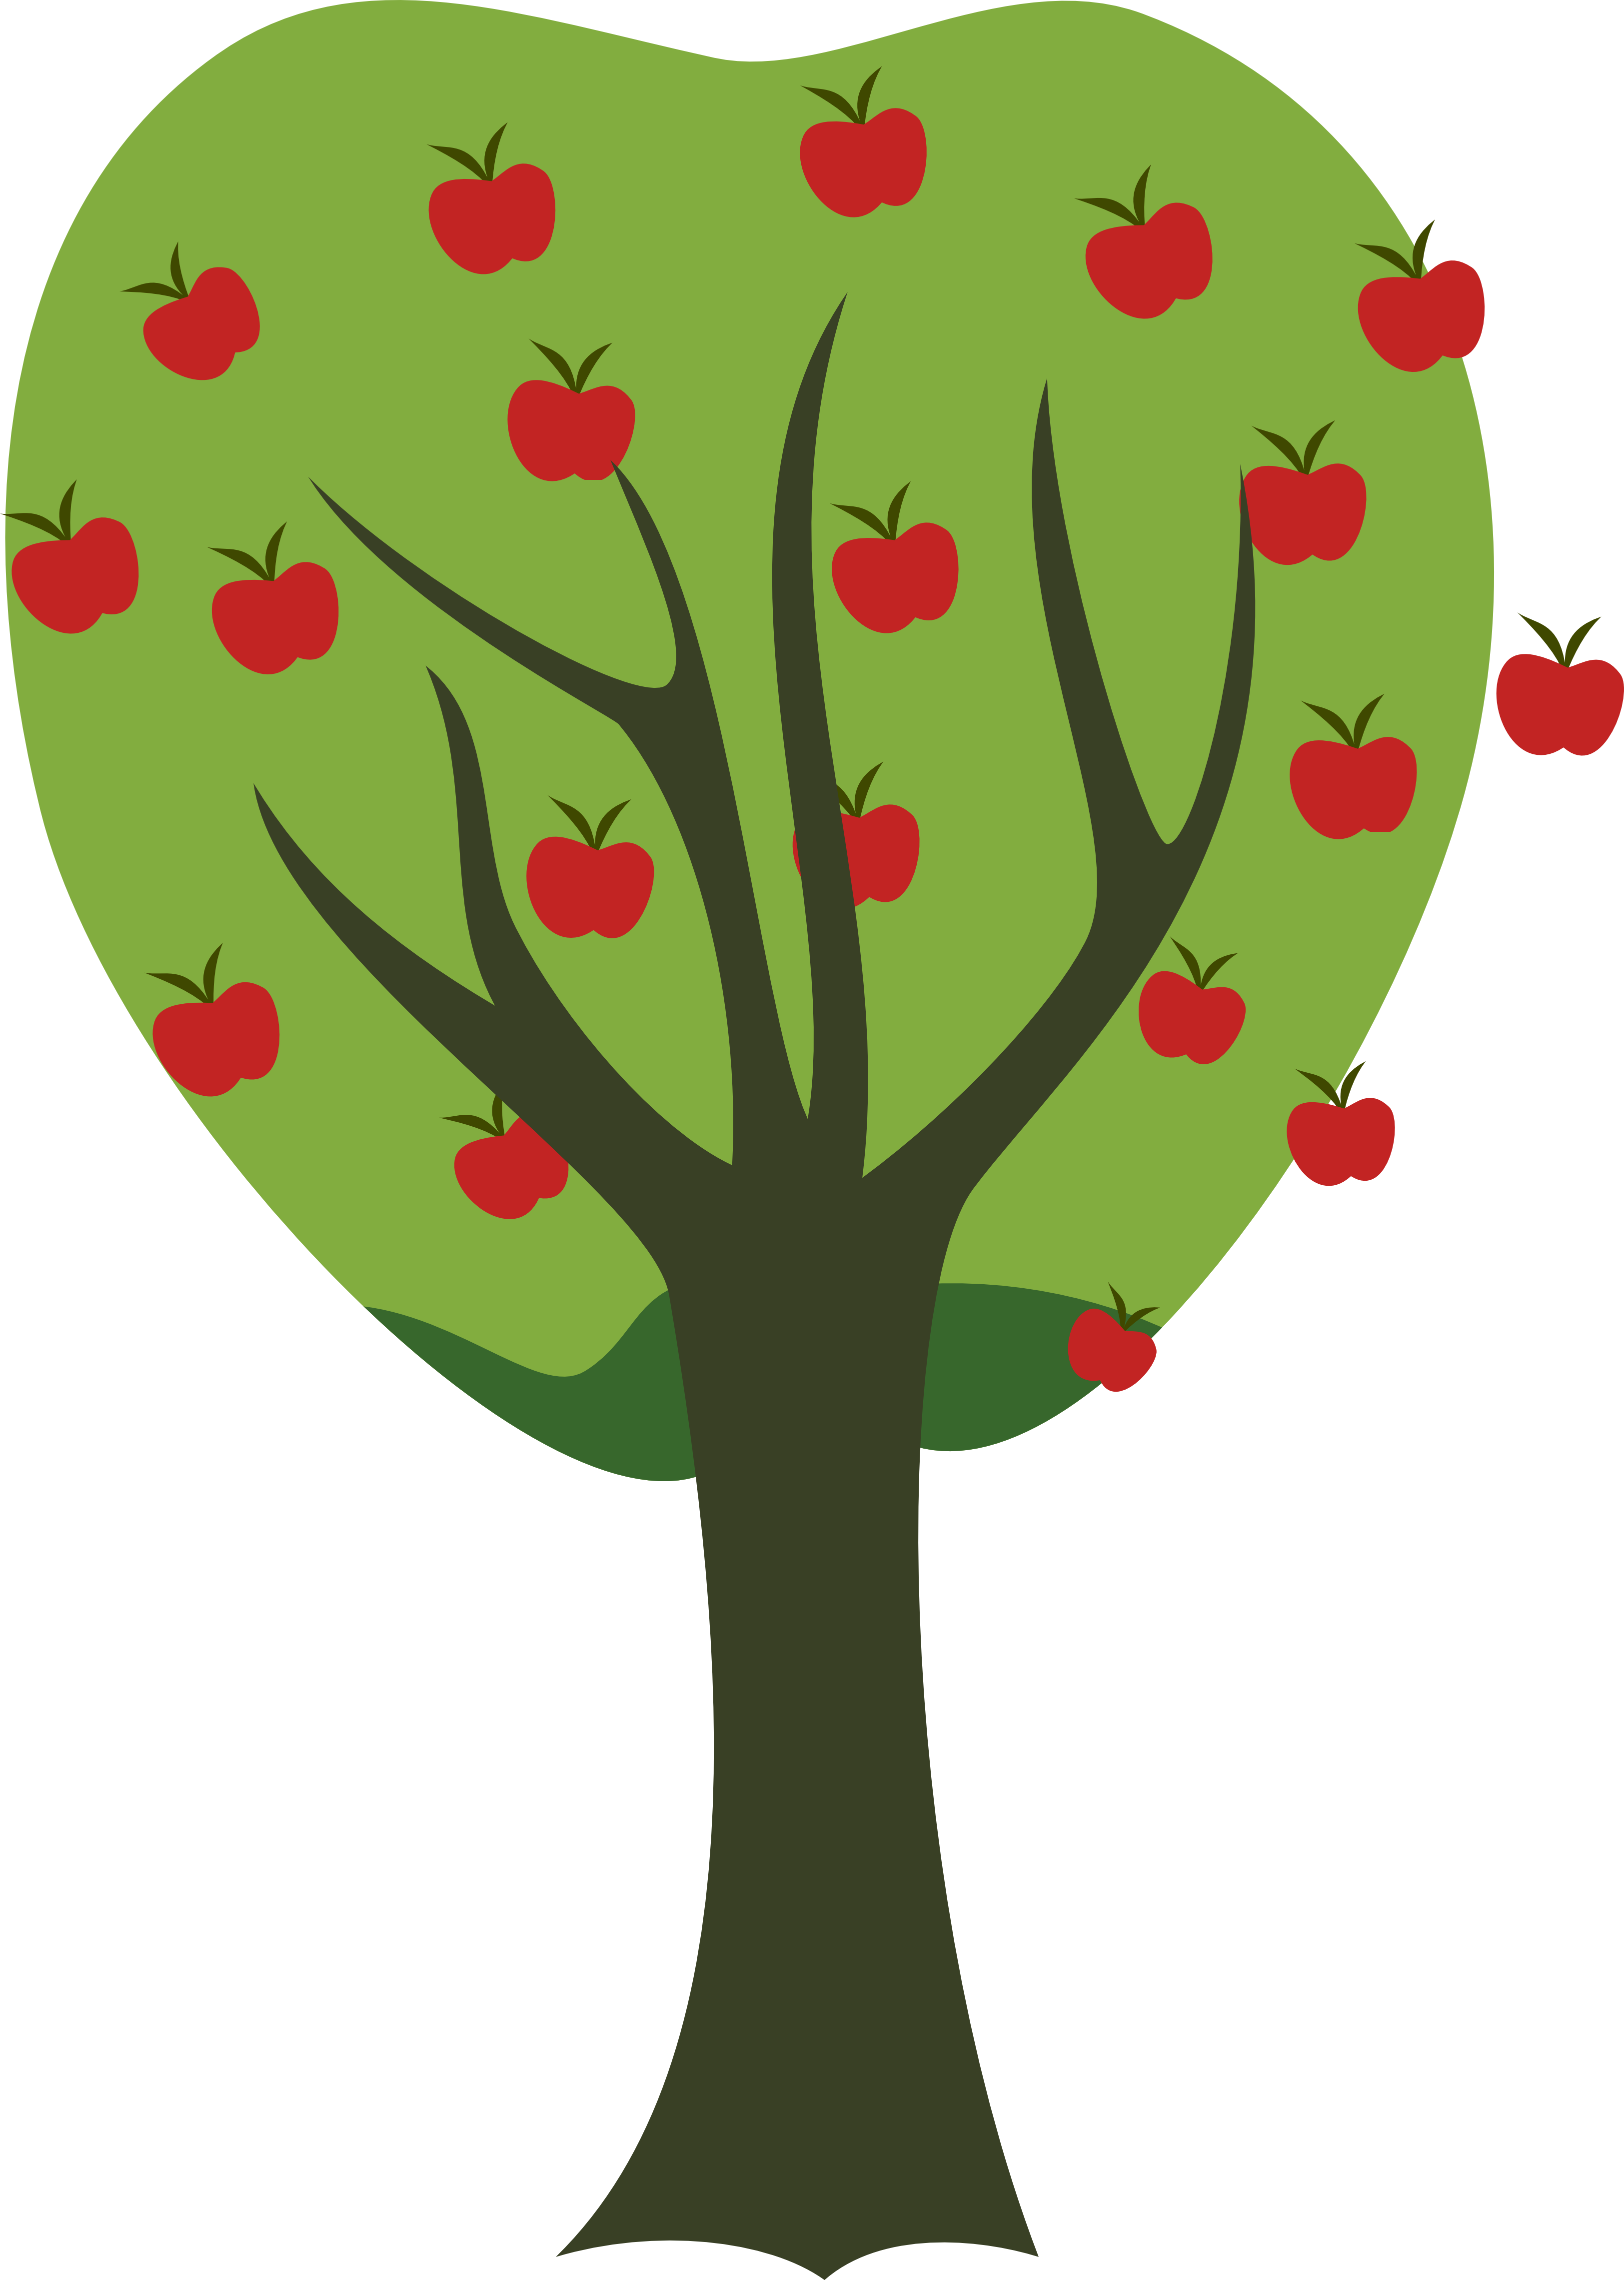 Download Bare Apple Tree Clipart - Apple Tree Clipart Png ... svg stock